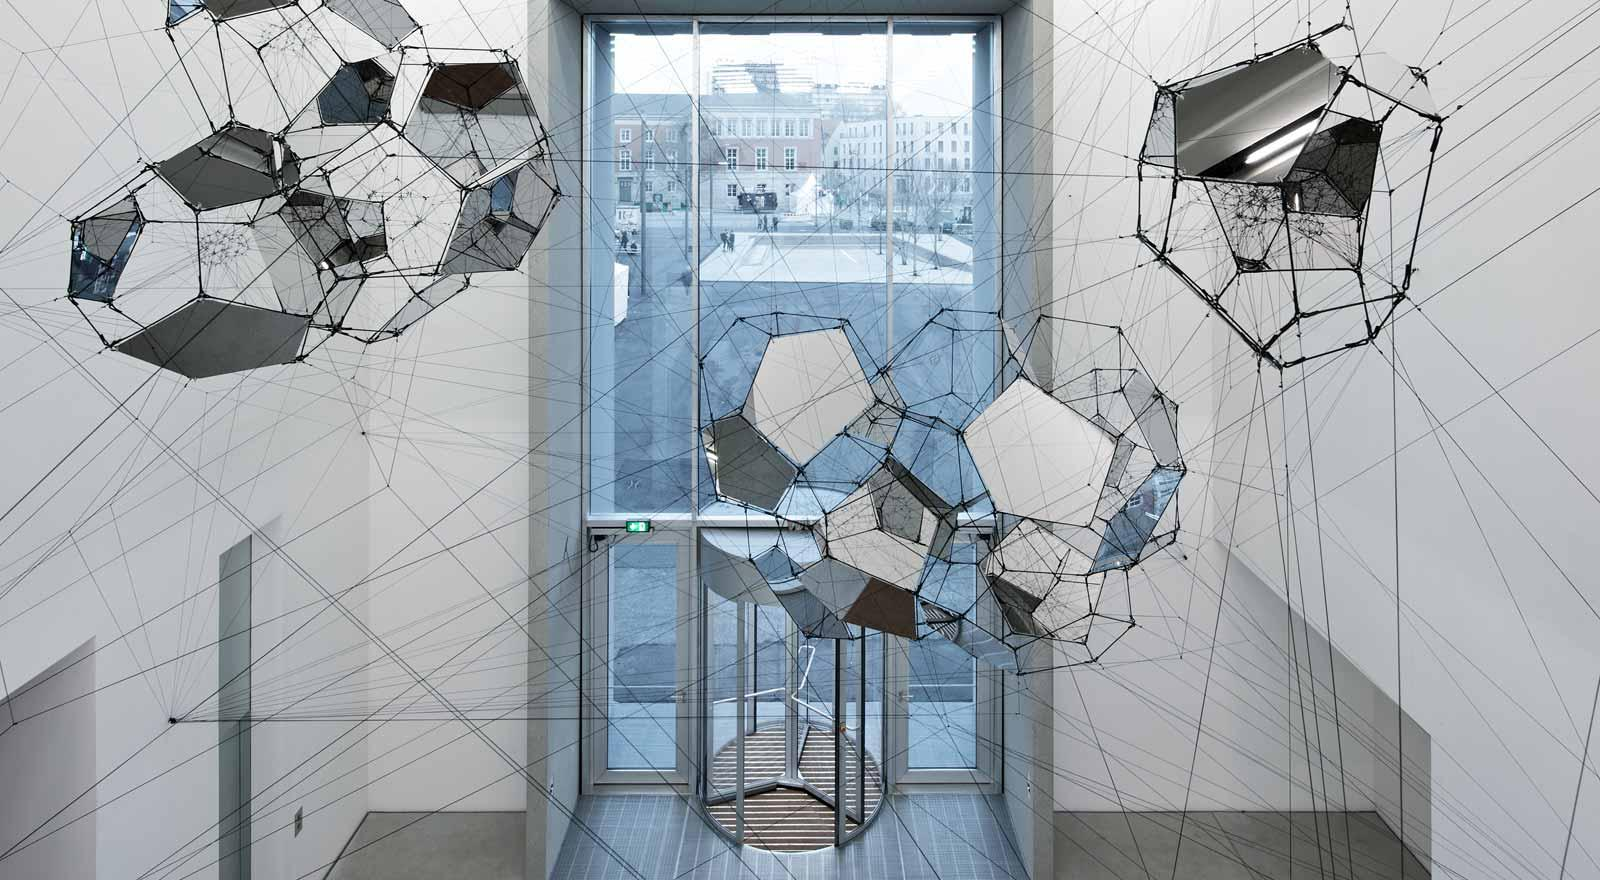 Tomás Saraceno's Sundial for Spatial Echoes in the foyer of the Bauhaus Museum Weimar